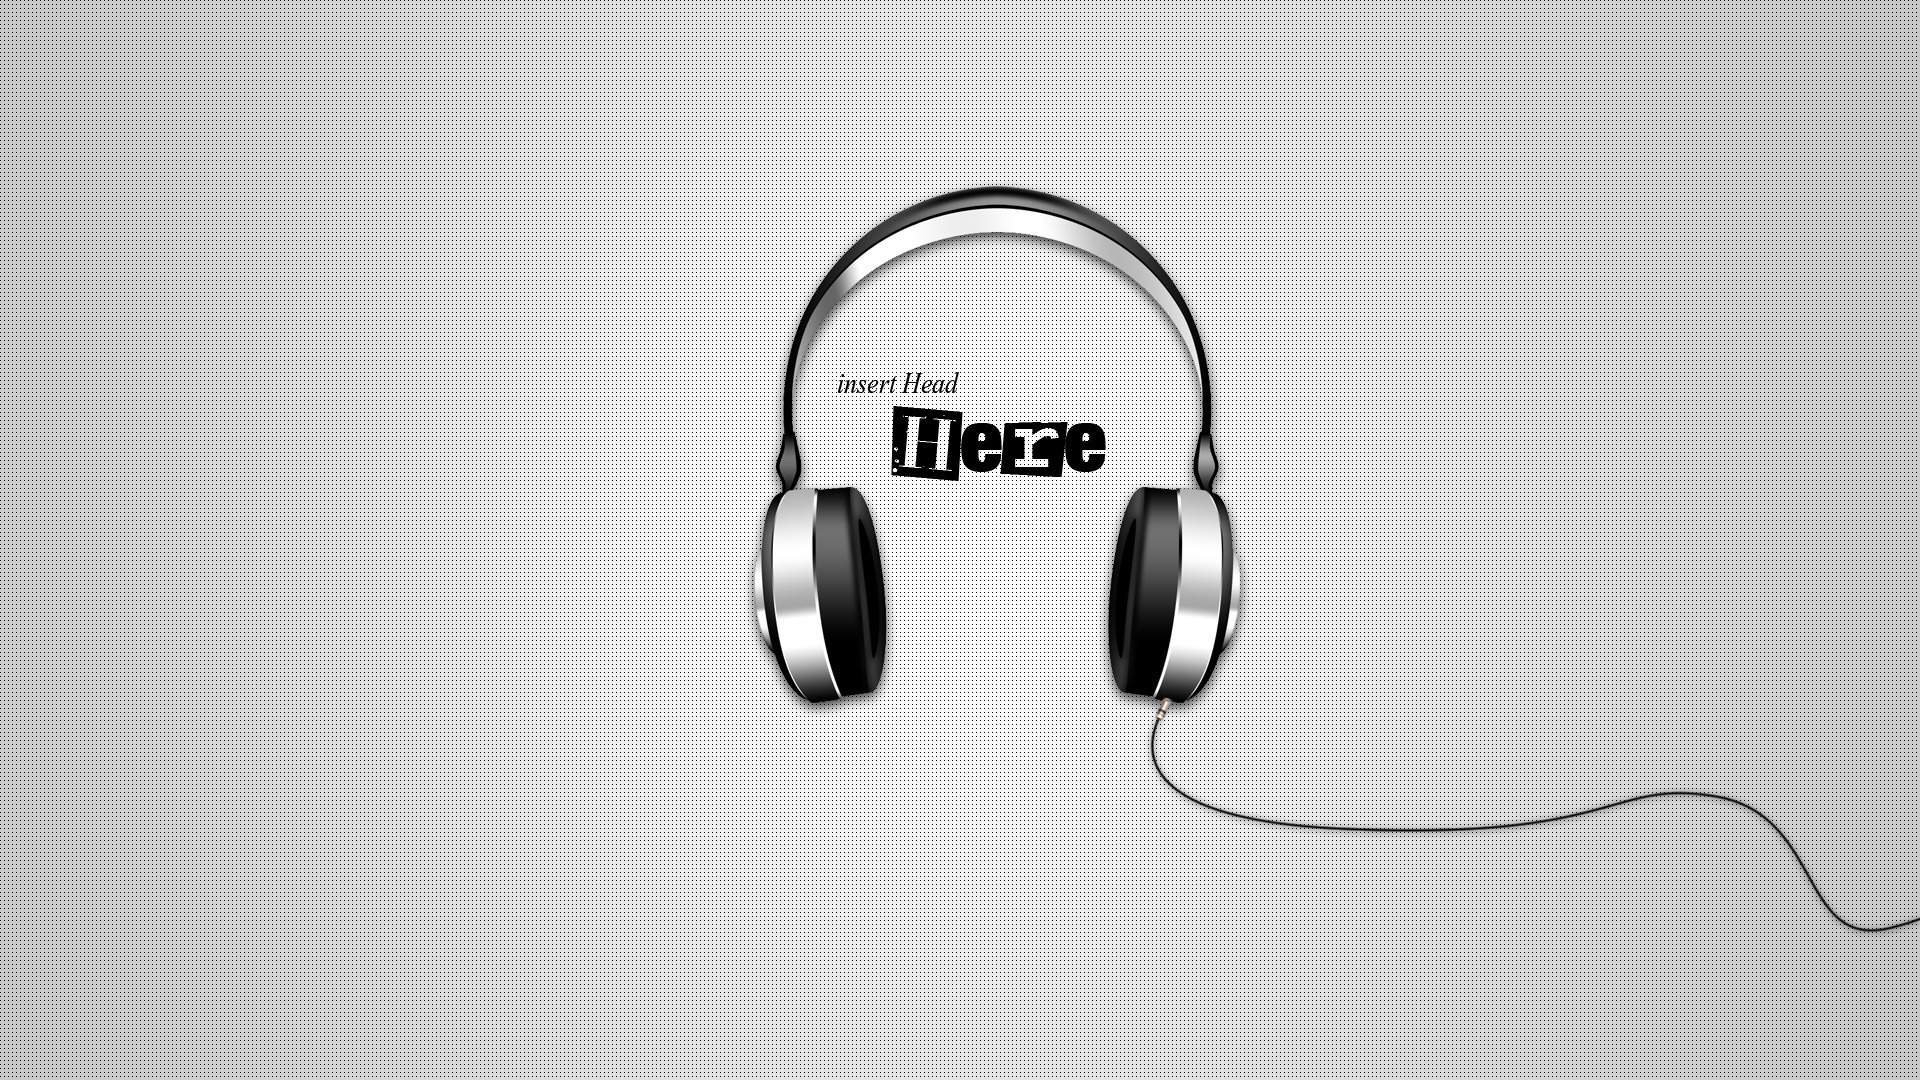 Headphones Full HD Wallpaper And Background Image